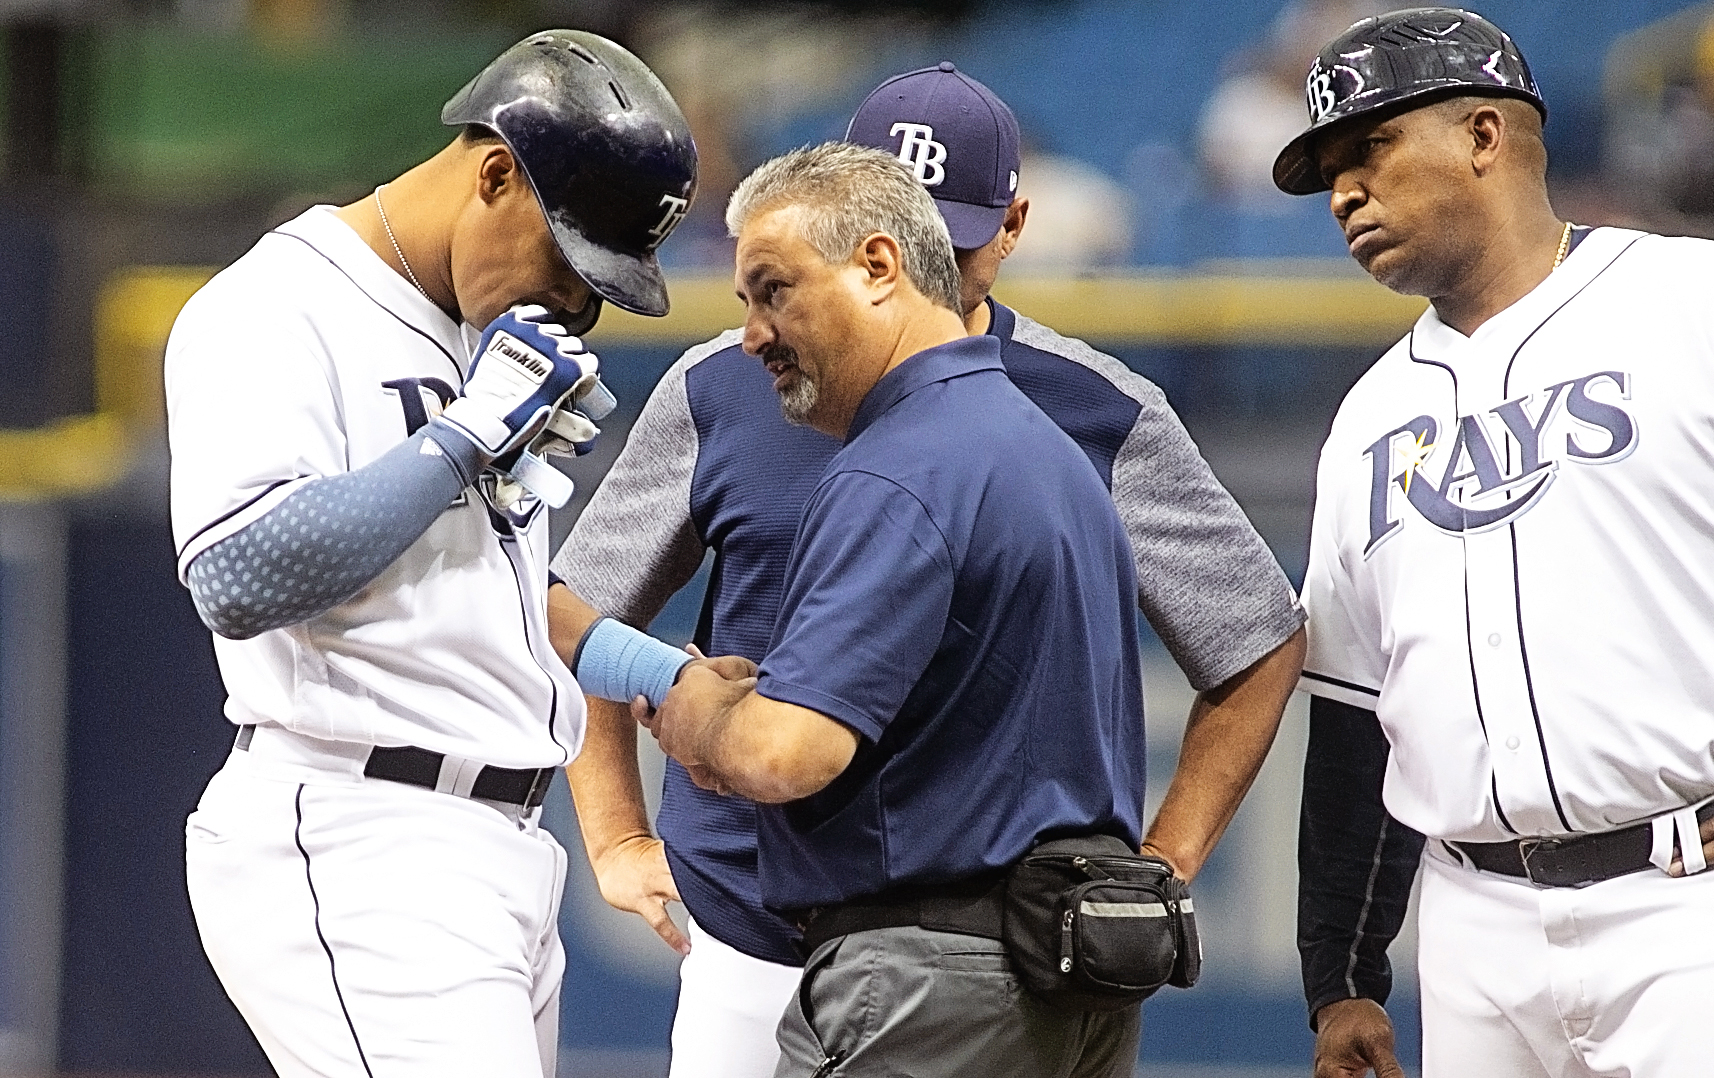 Gomez is examined after being hit by a pitch./CARMEN MANDATO